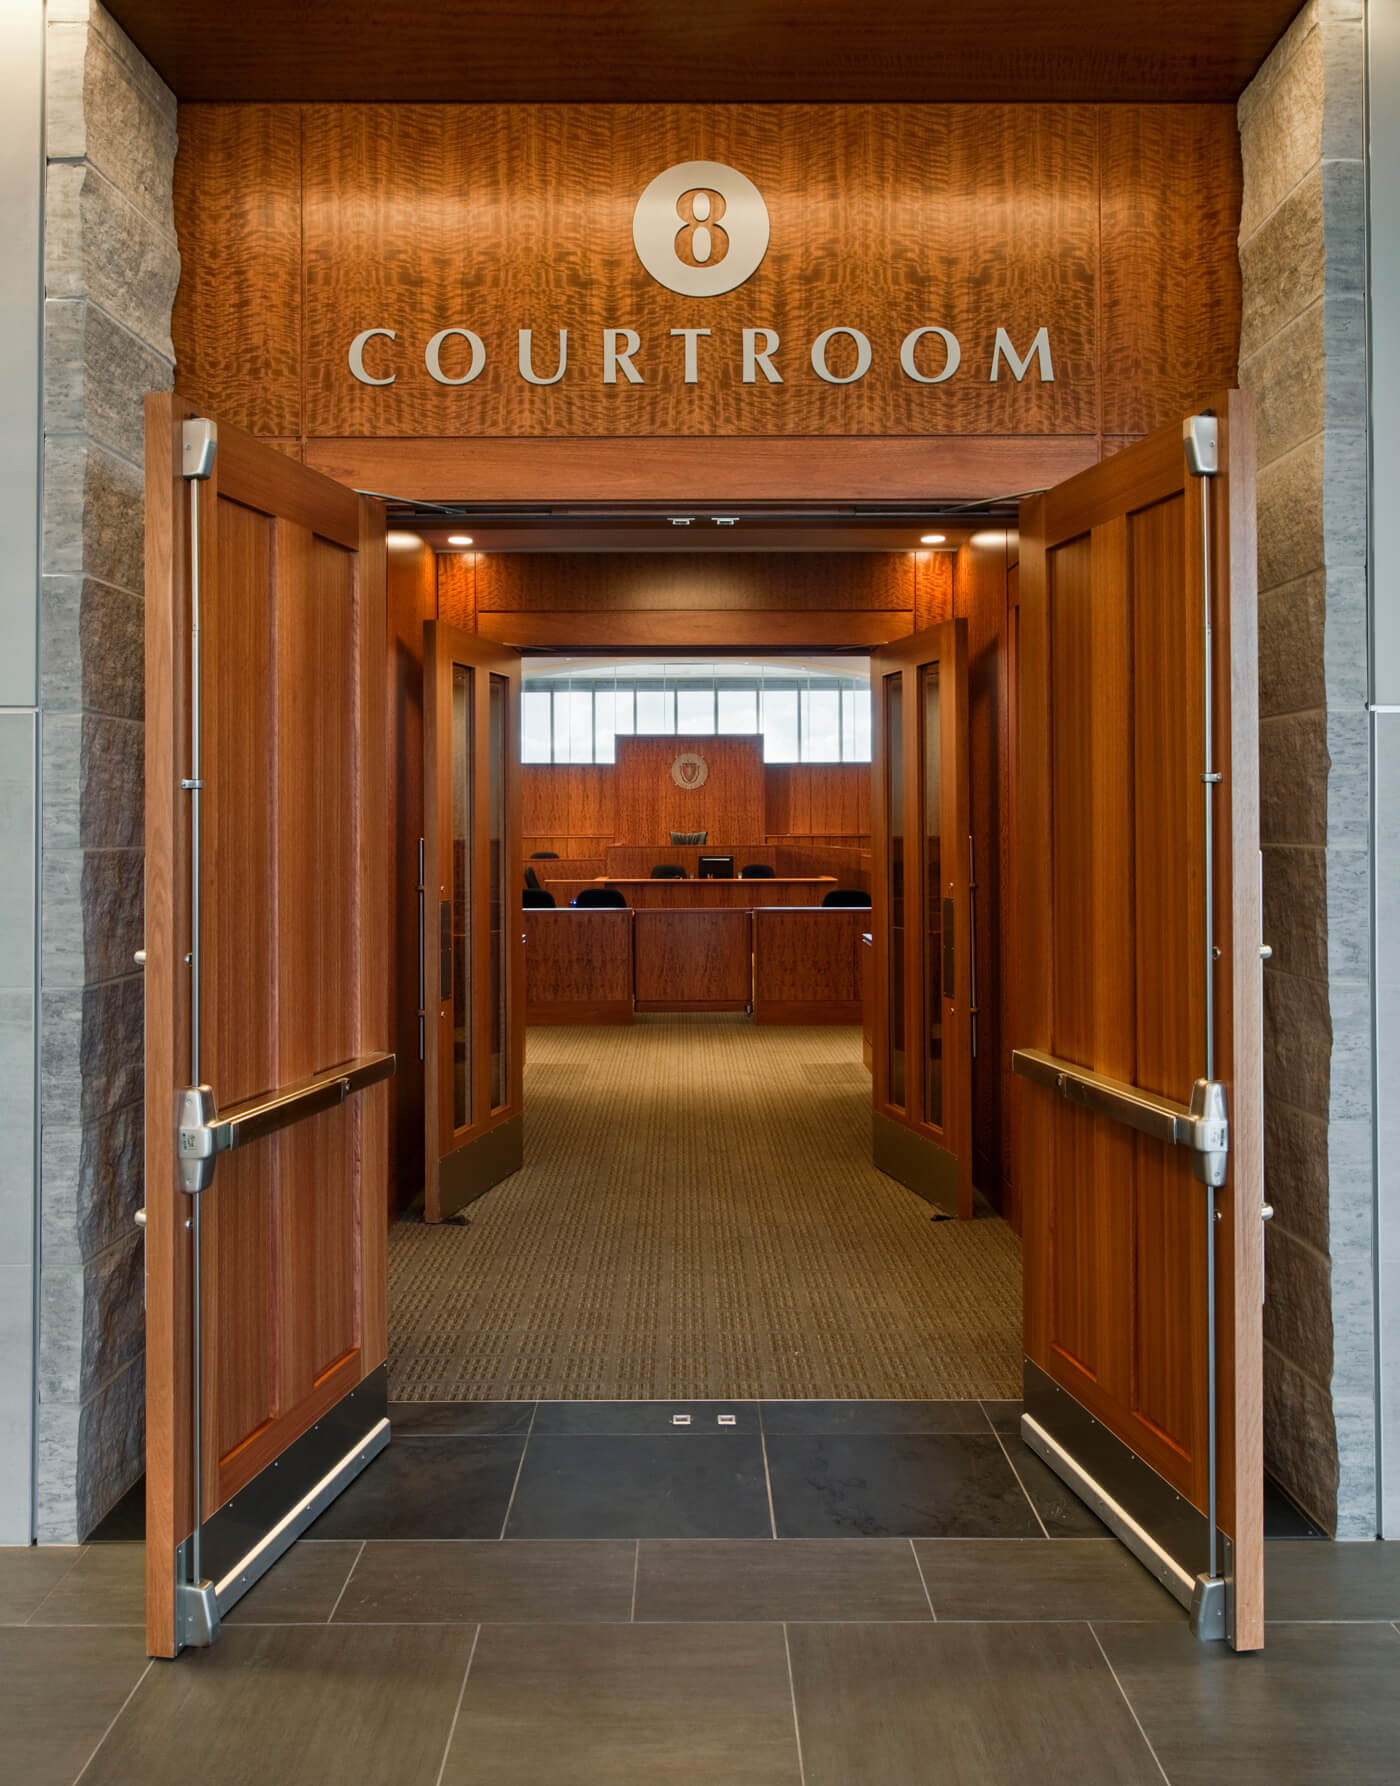 Large courtroom 8 entrance with open door, framed by dark, yet warm wood finishes.